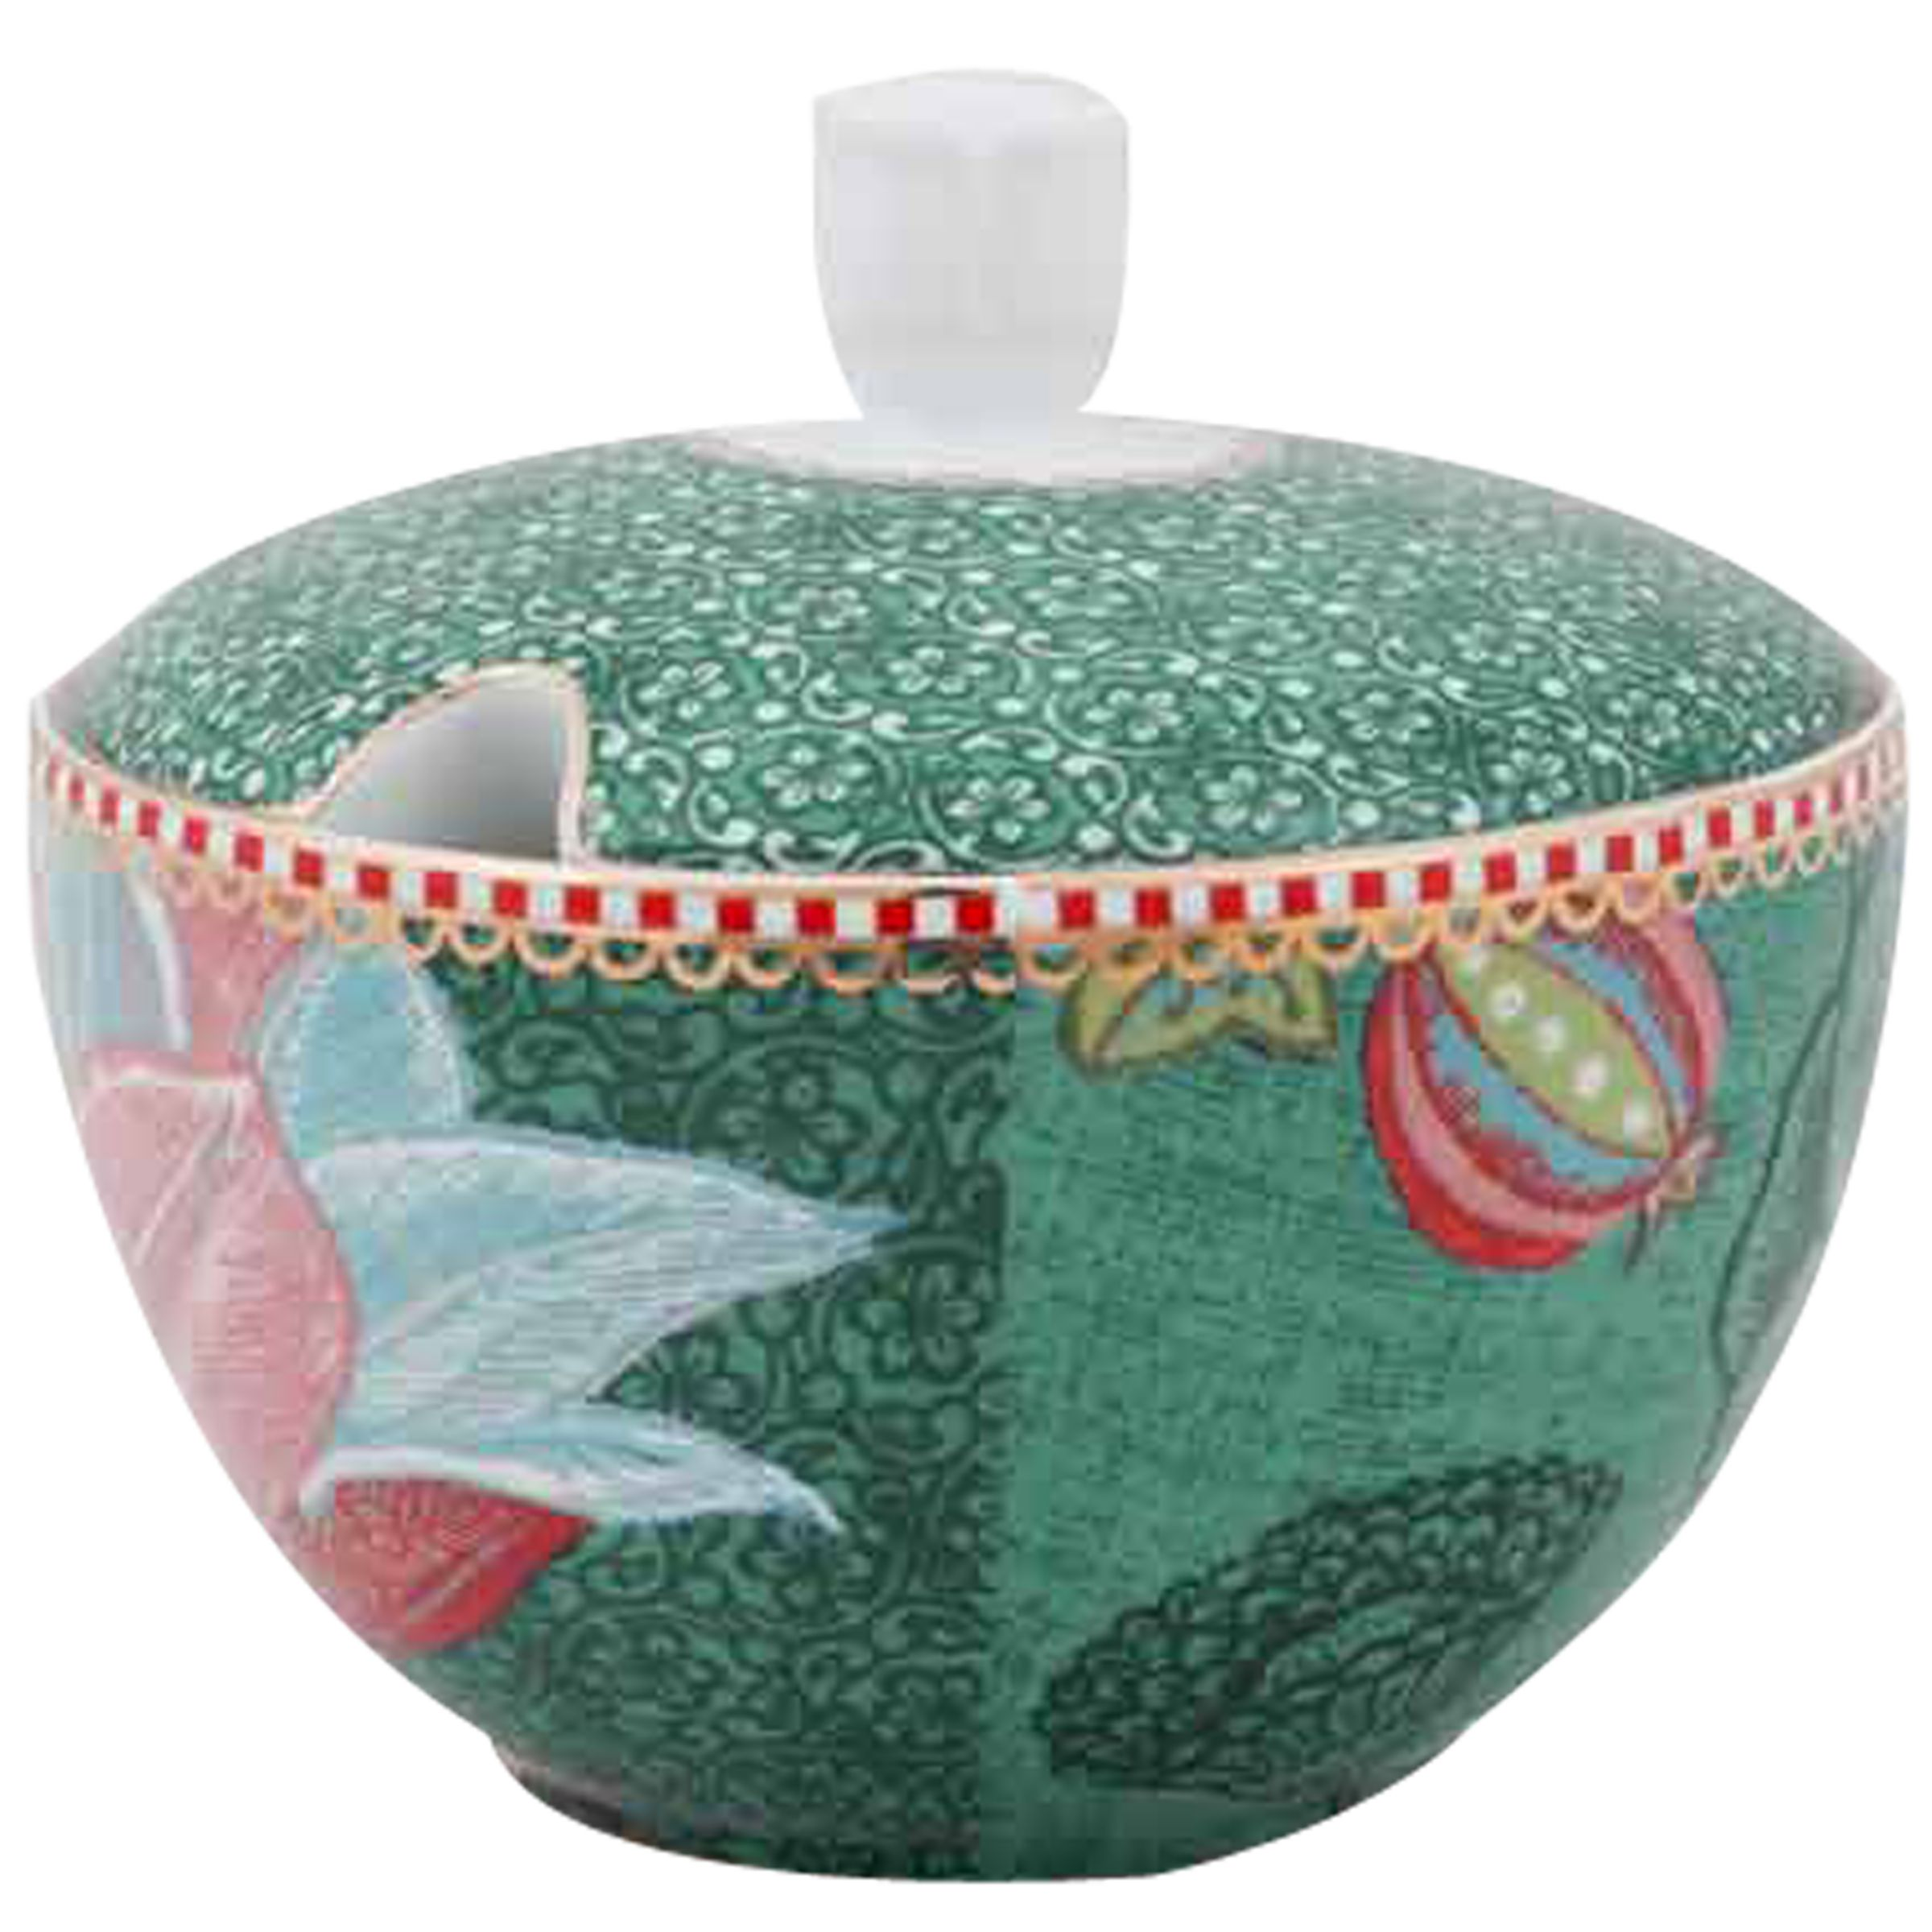 PiP Studio PiP Studio Spring To Life Sugar Bowl, Green